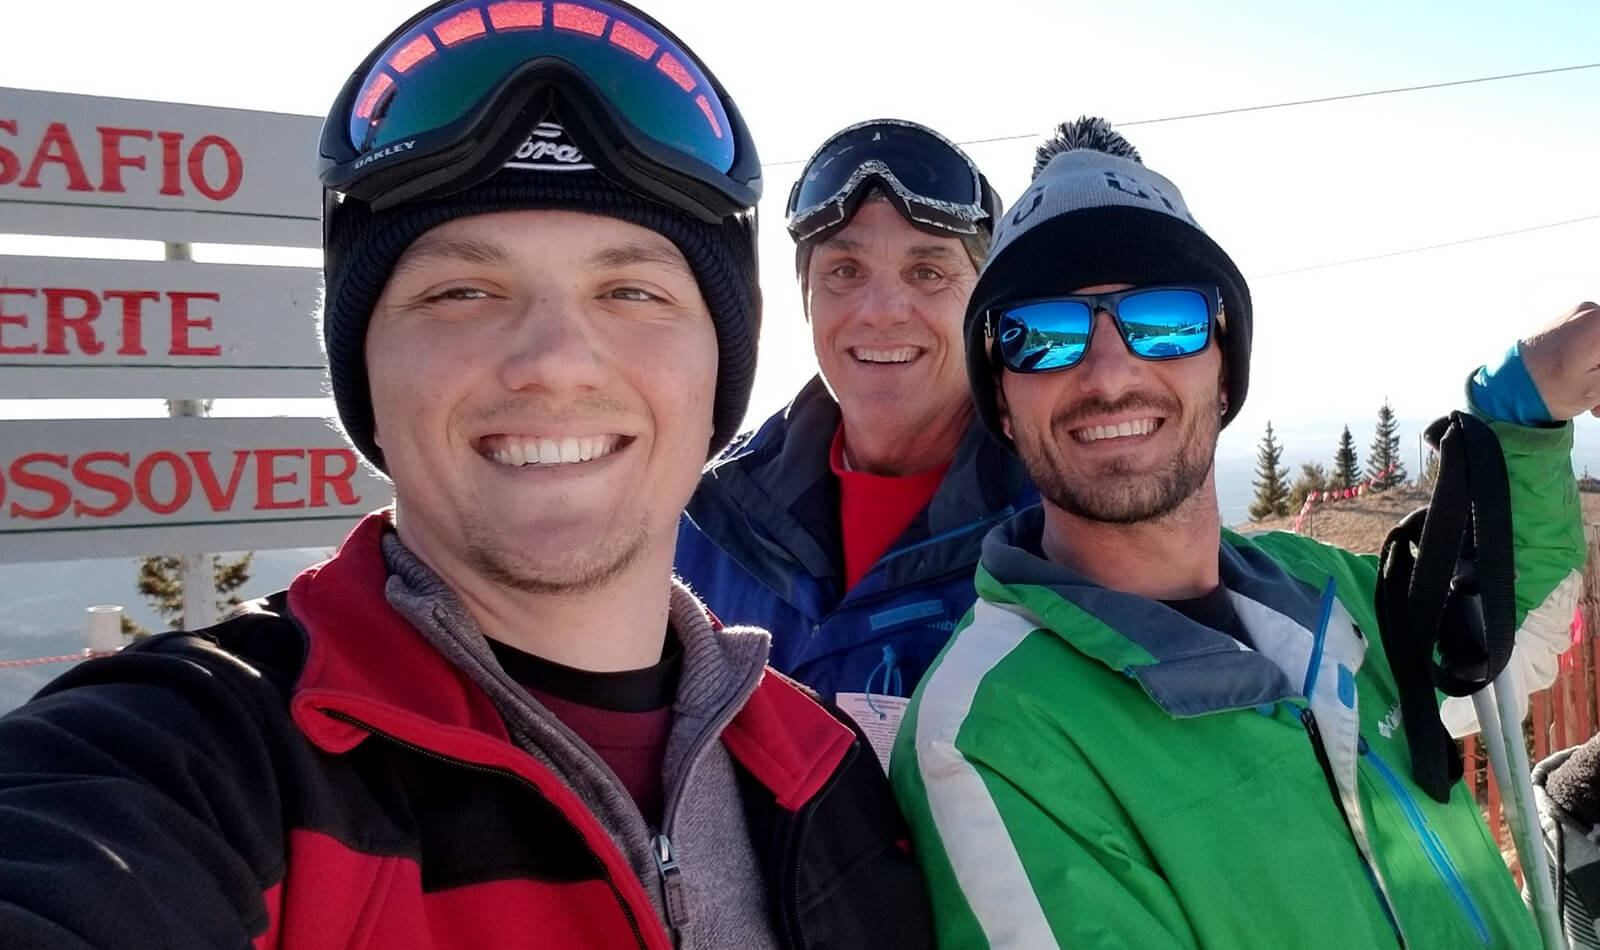 Luke and family taking a selfie out on the slopes after skiing.